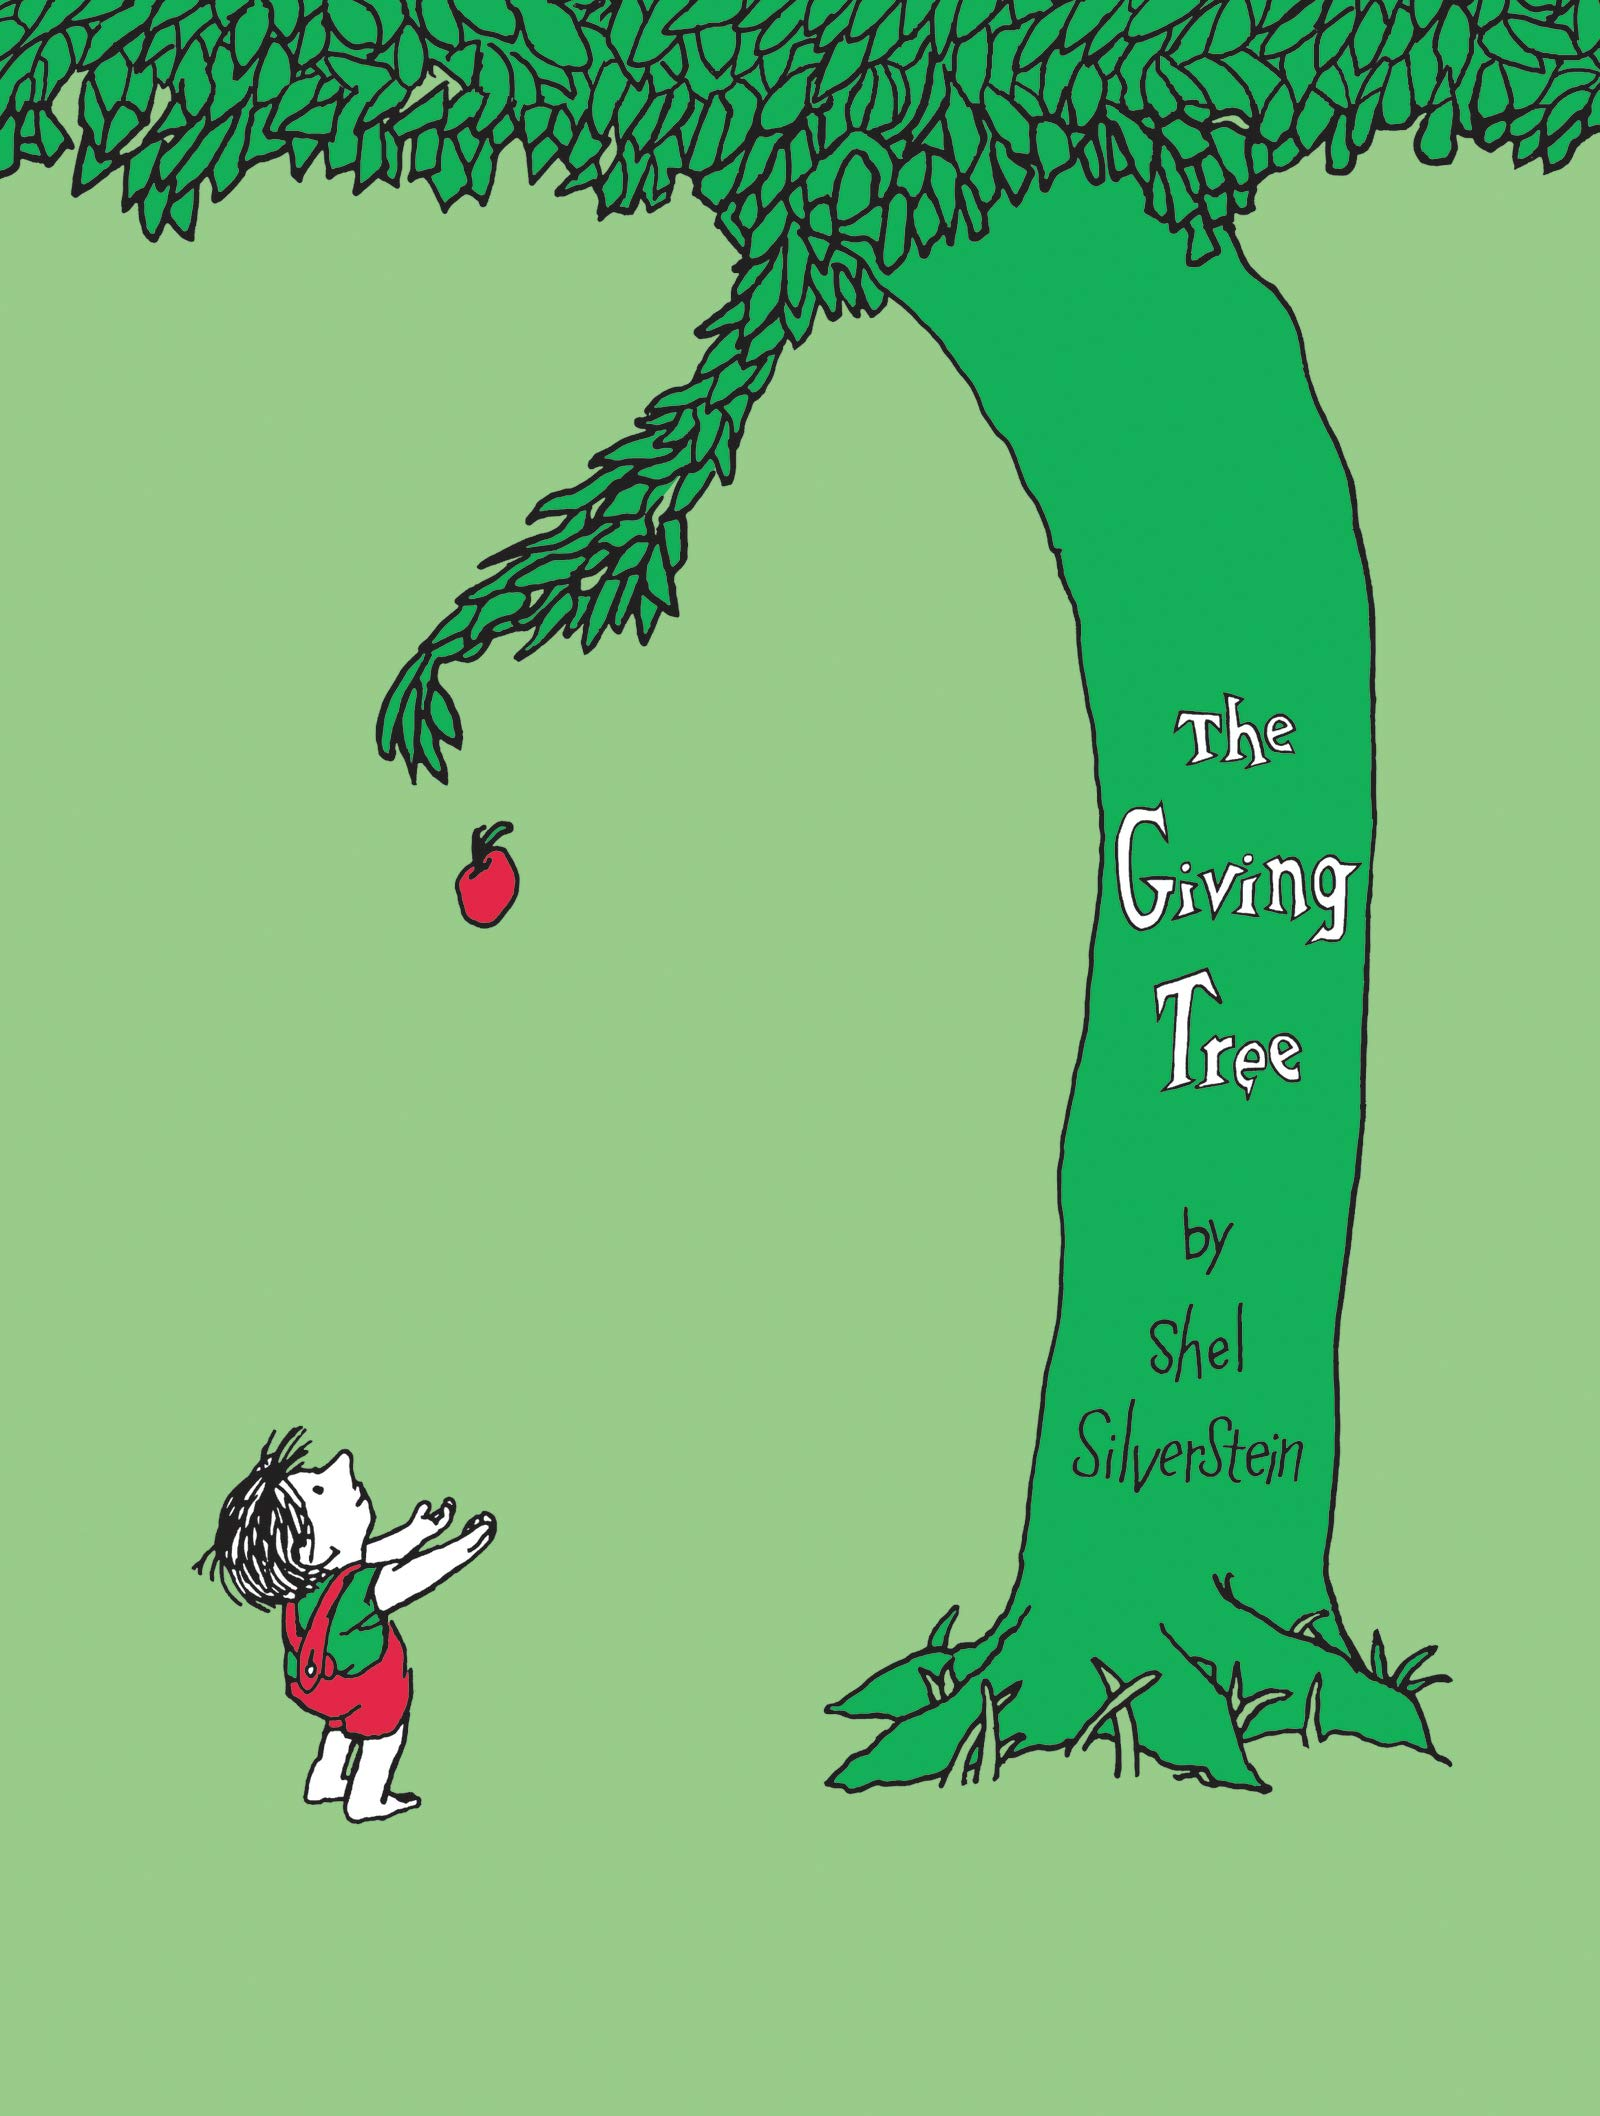 The Best Picture Books of All Time - The Giving Tree.jpg